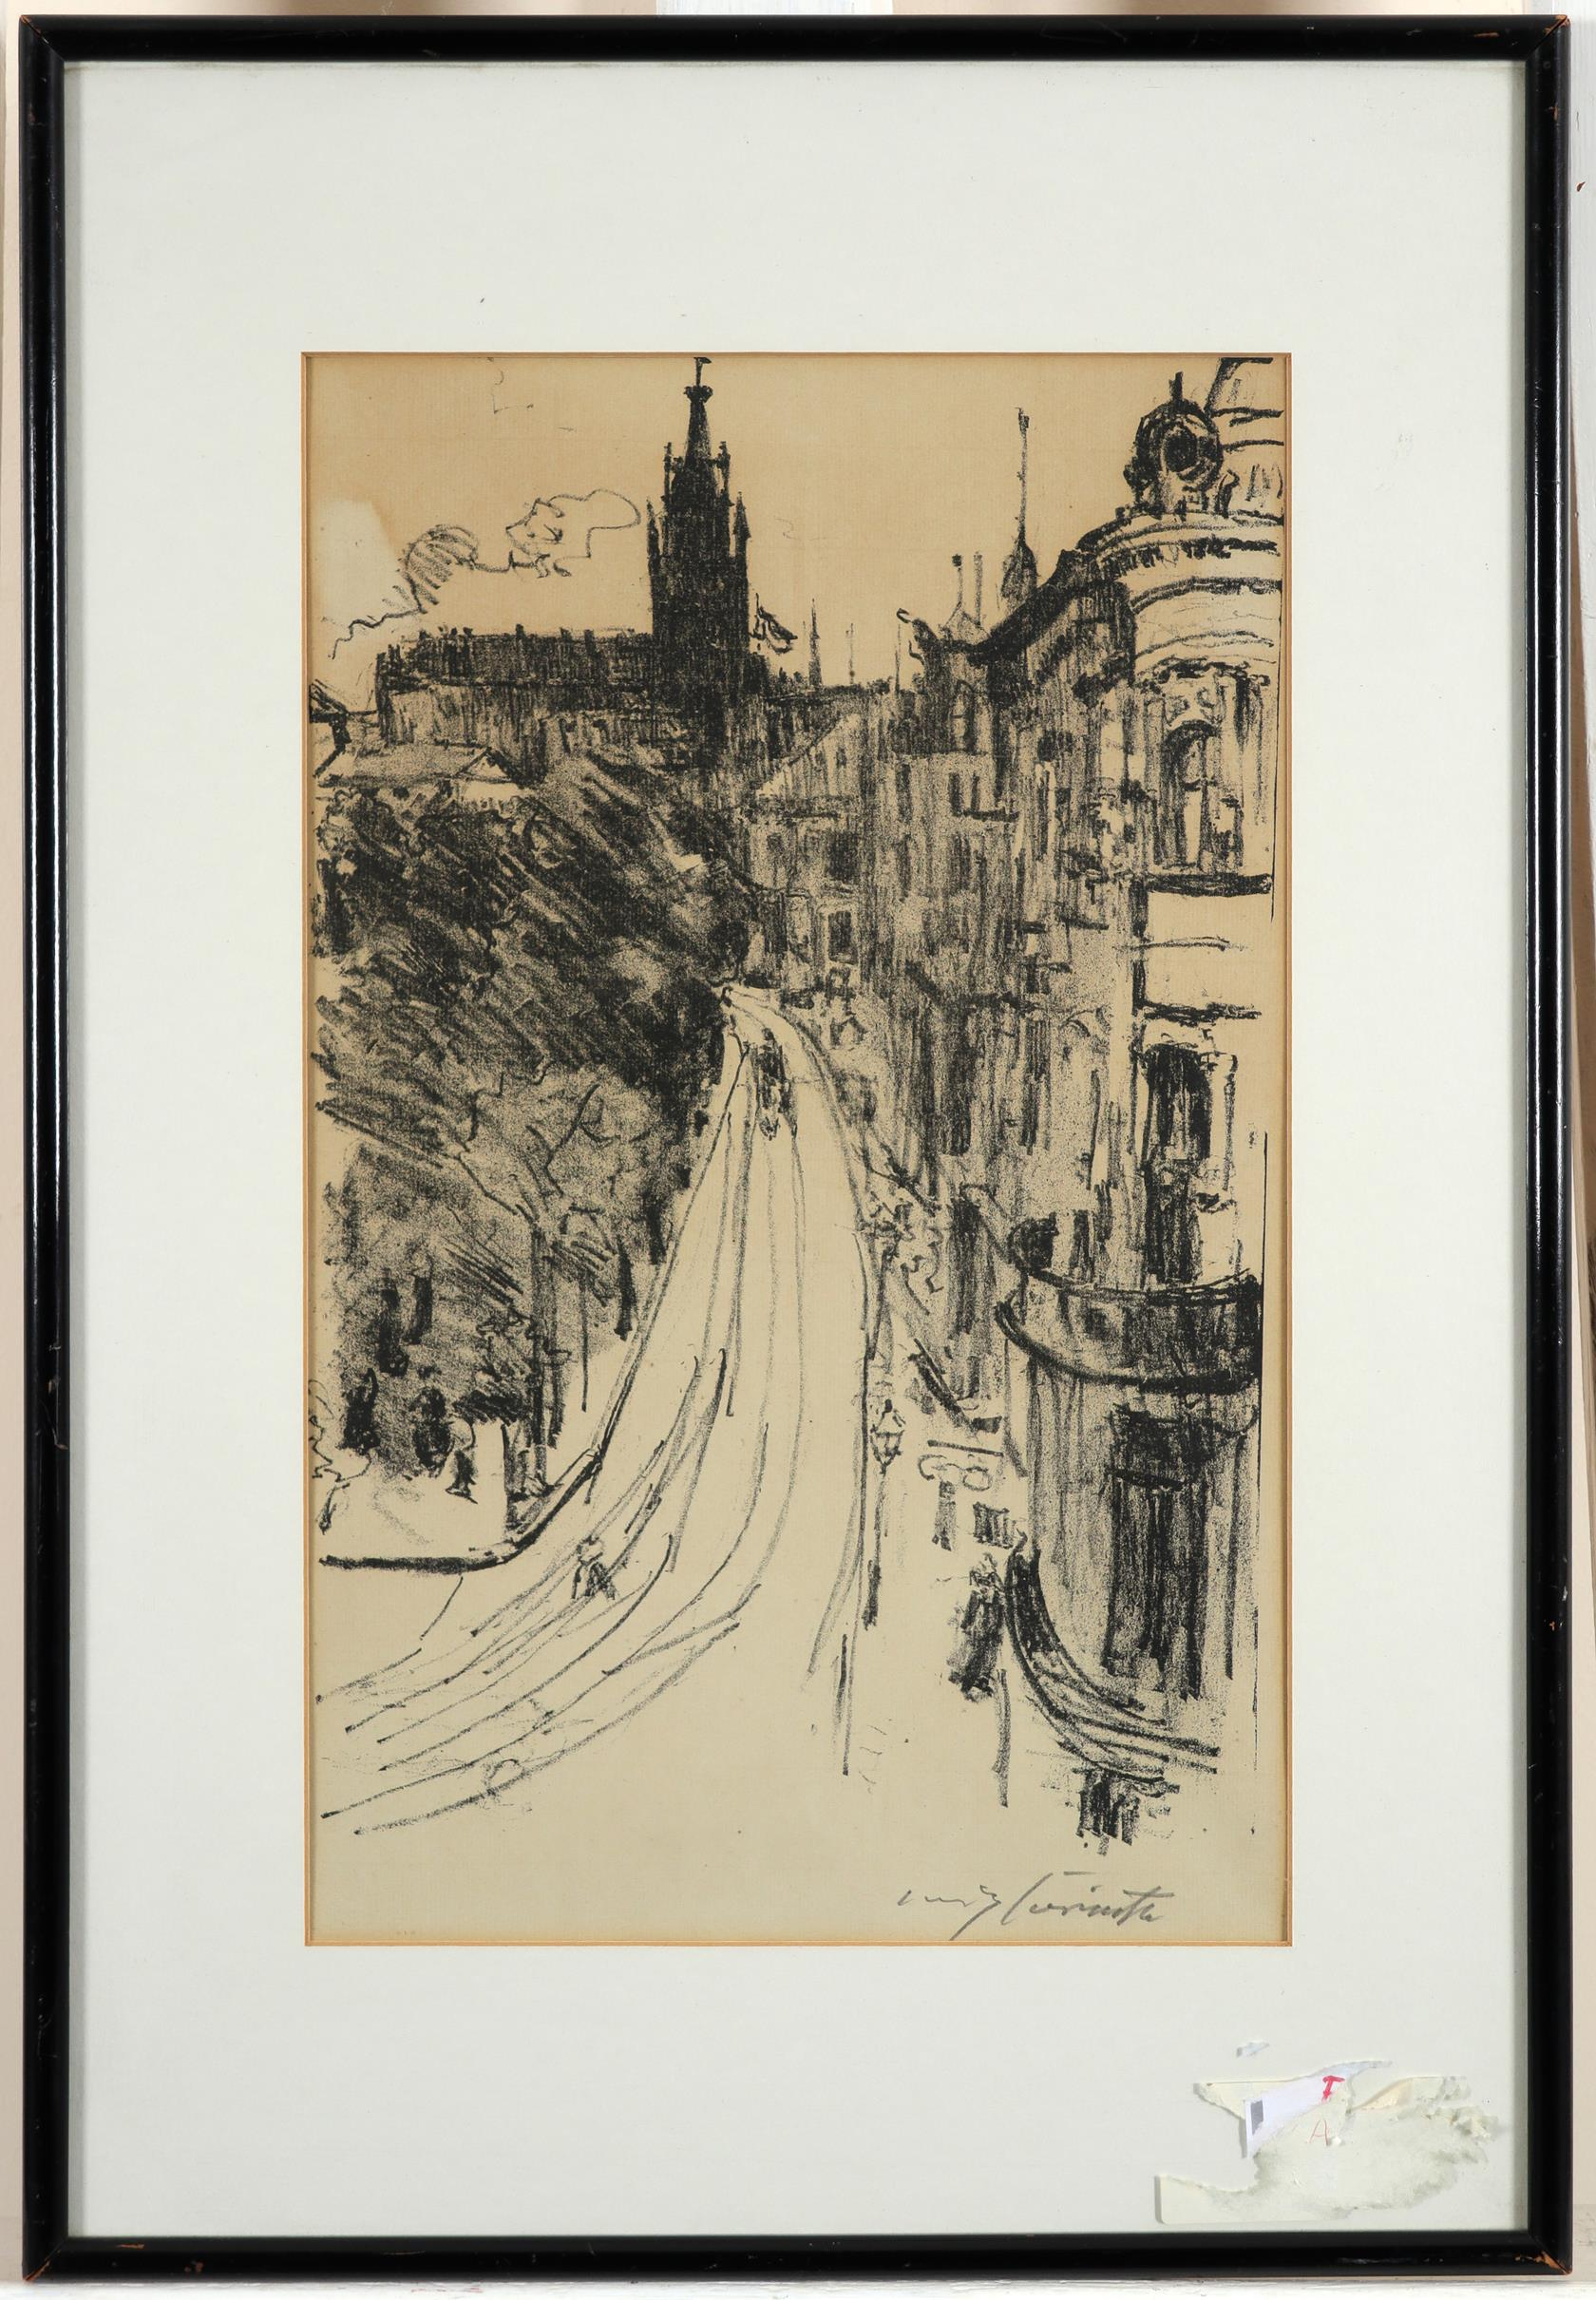 Lovis Corinth (German 1858-1925) Strasse in Königsberg Signed L***s Corinth (in pencil, lower right) - Image 2 of 3